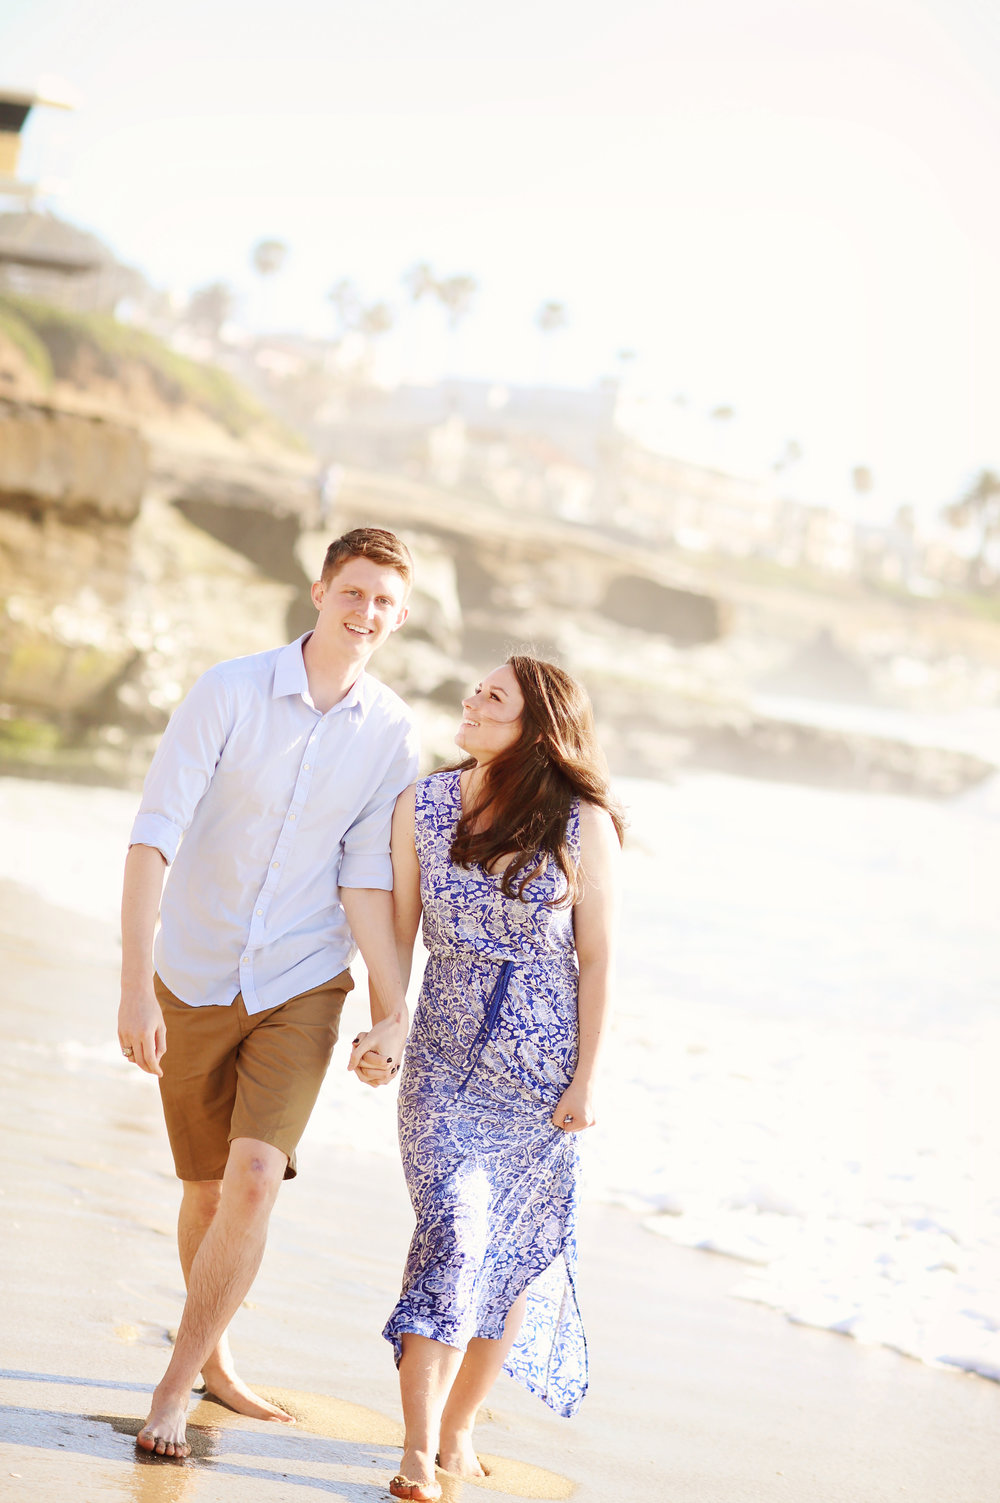 Young couple strolling on the beach. Great beach portrait.